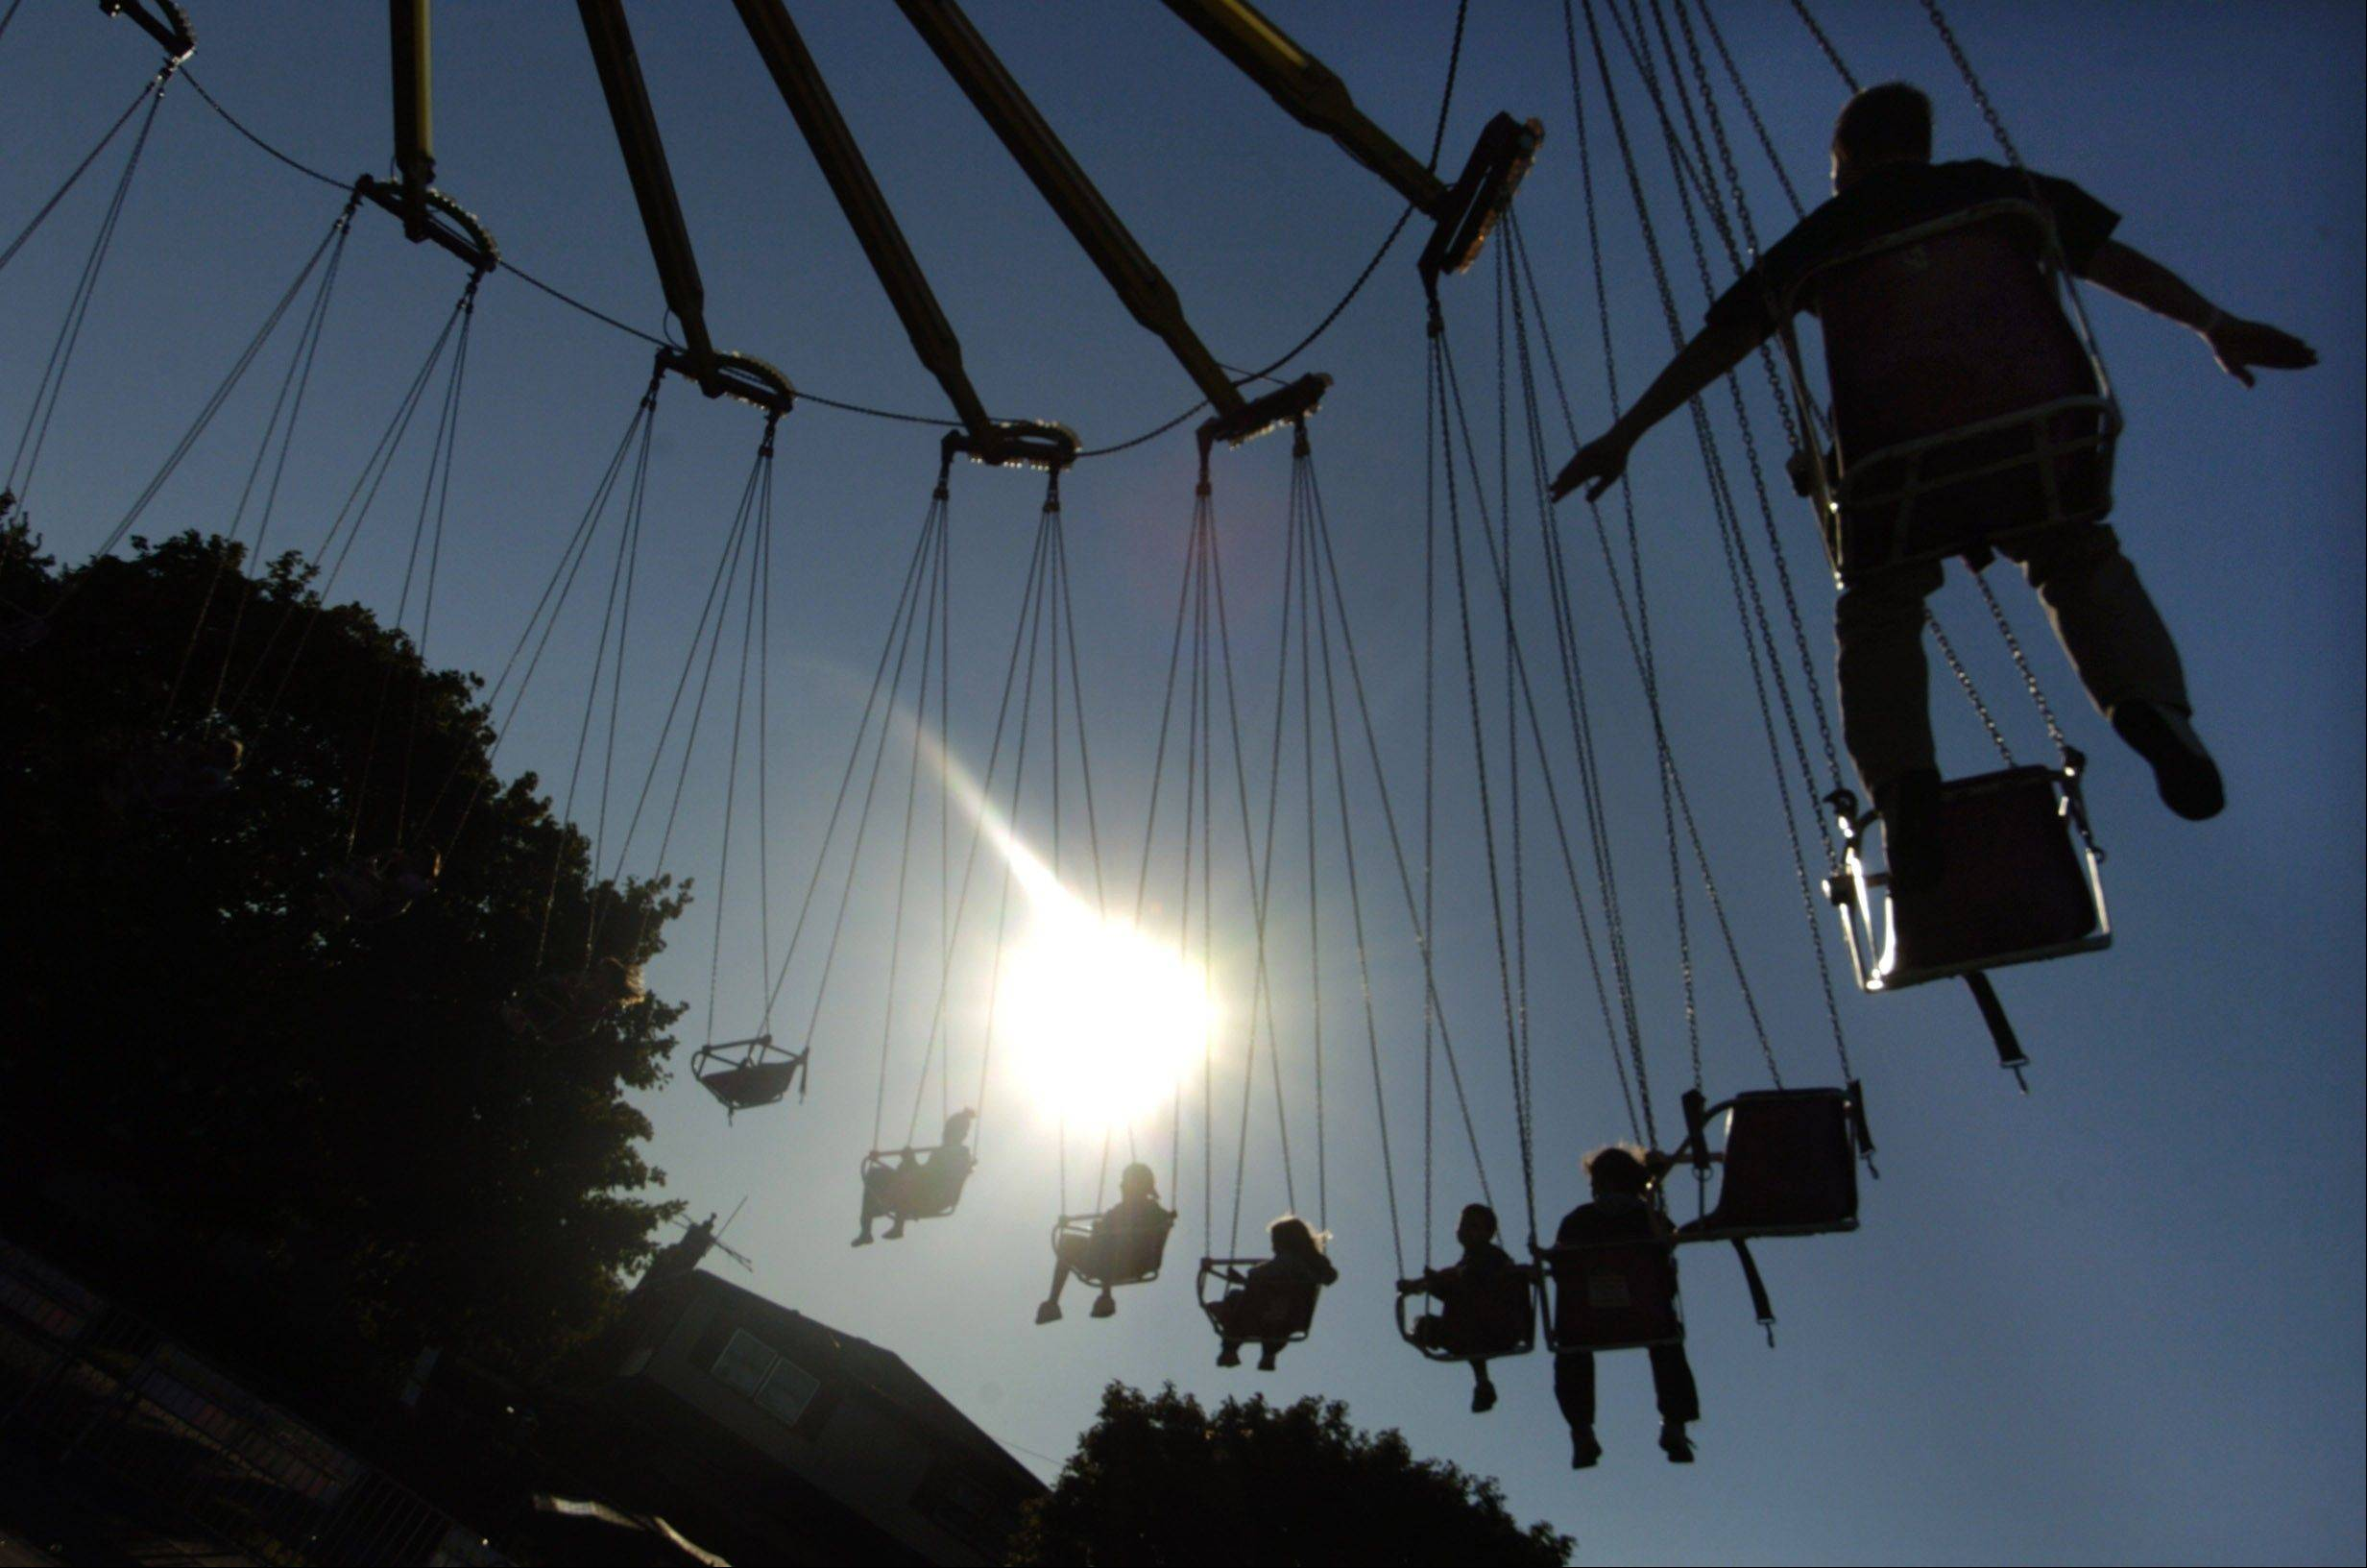 Festival-goers enjoy the yo-yo swing ride.